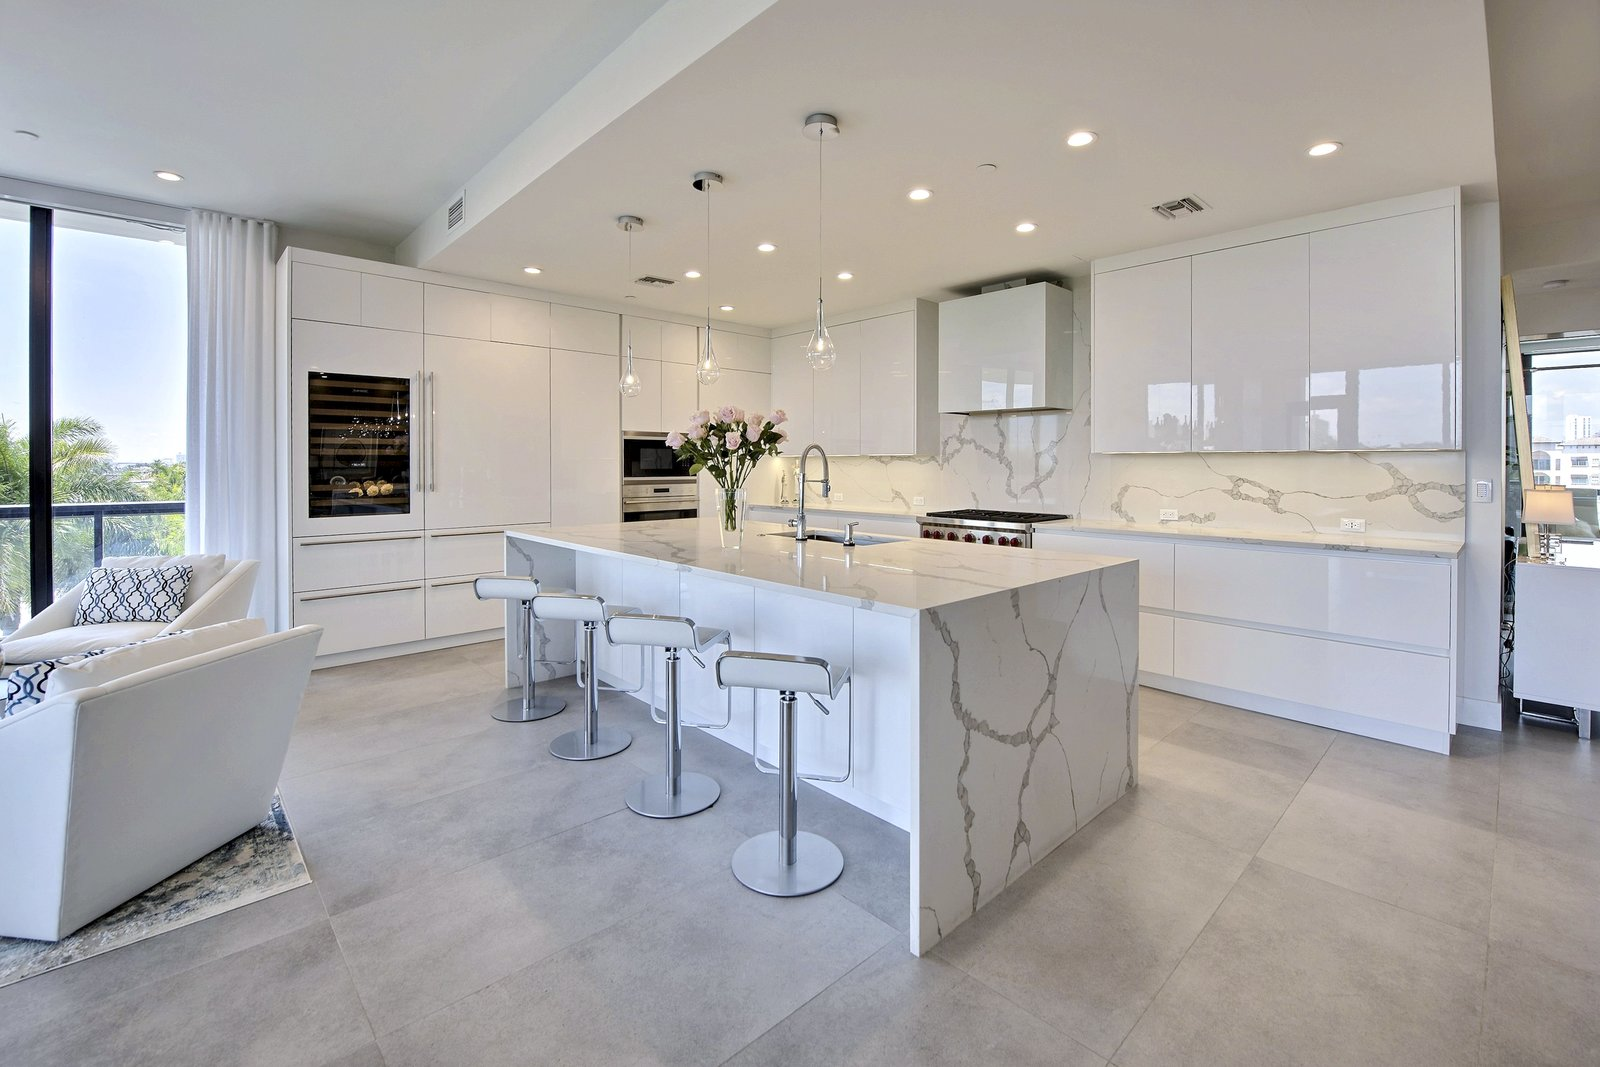 The white quartz counters and backsplash boast a clean, open design. This kitchen's sophisticated feel is perfect for everything from cocktail parties to chef-inspired dinners.  Luxury Florida Penthouse with Private Boat Slip Up for Auction